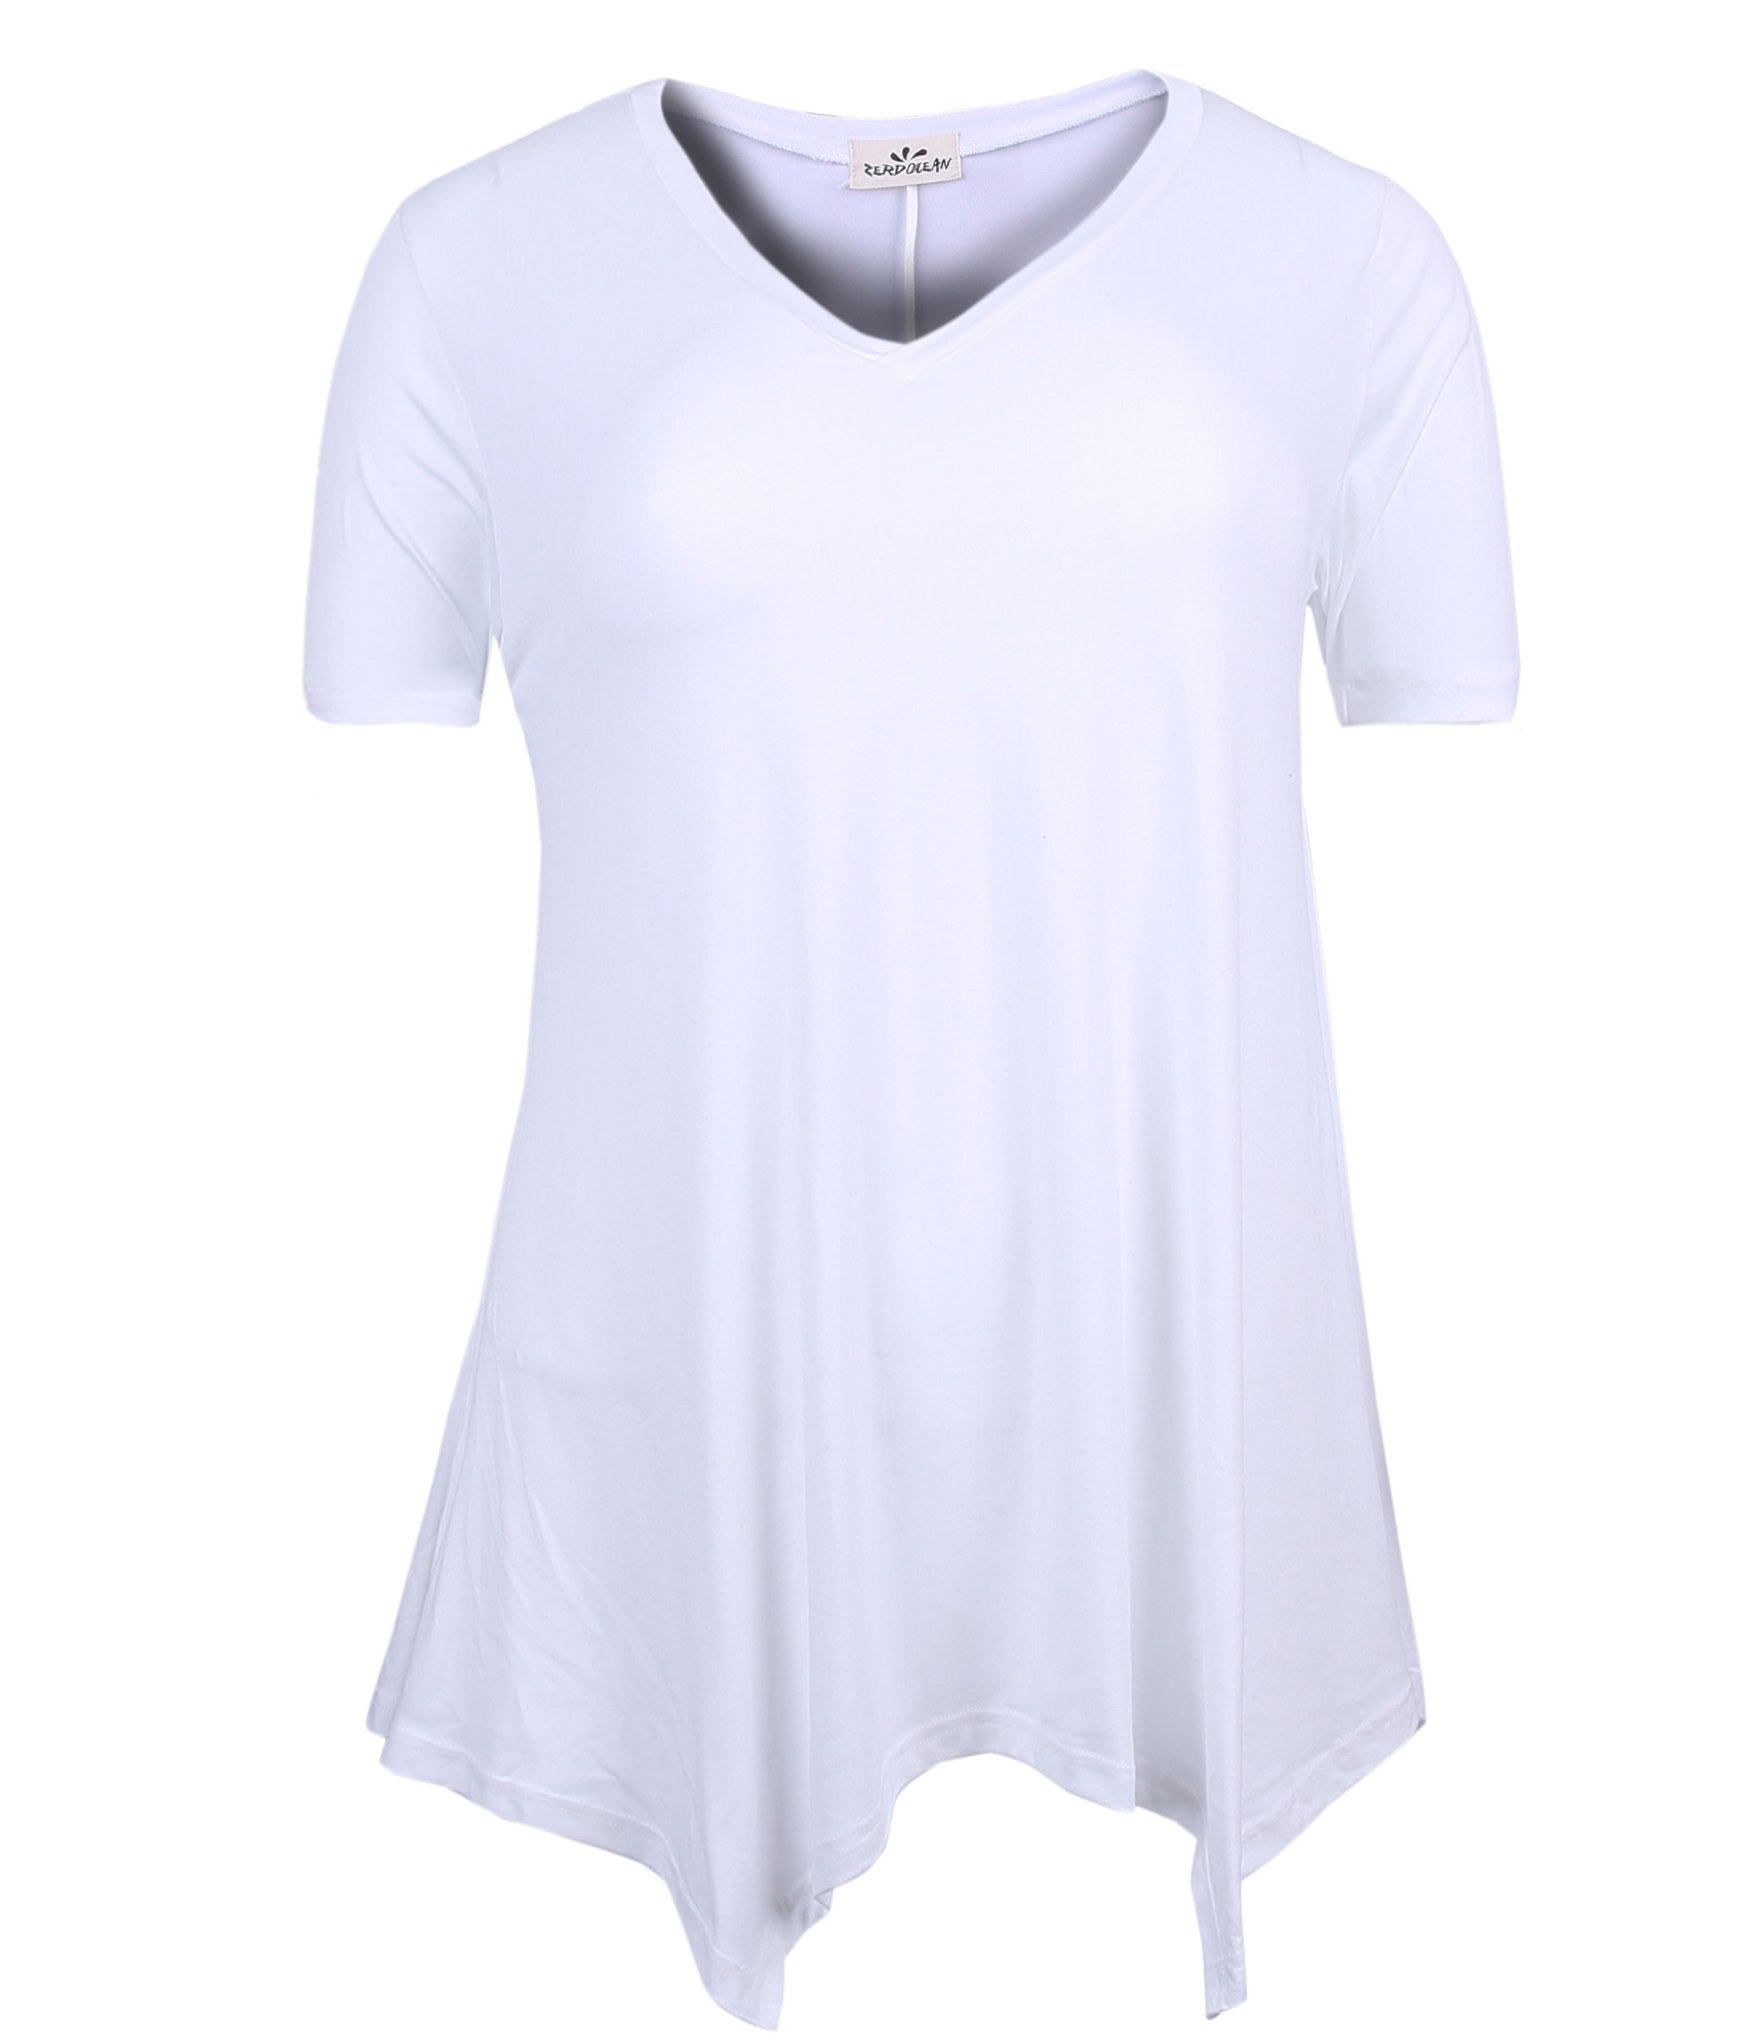 ZERDOCEAN Women's Printed V Neck Short Sleeve Tunic Top Loose Shirt Off-White 1X